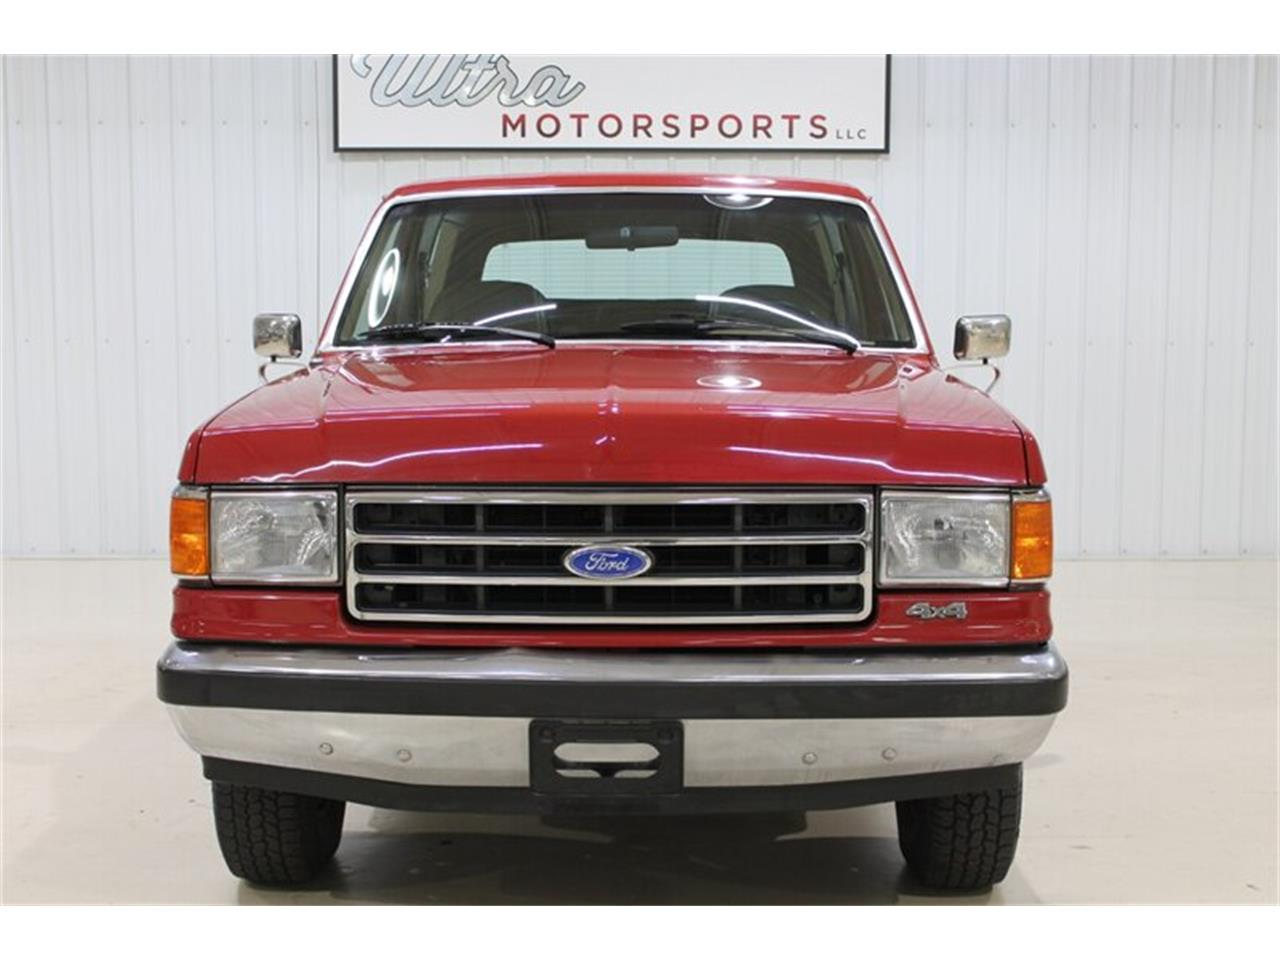 Large Picture of 1989 Ford Bronco located in Fort Wayne Indiana - $21,000.00 - QJ2N